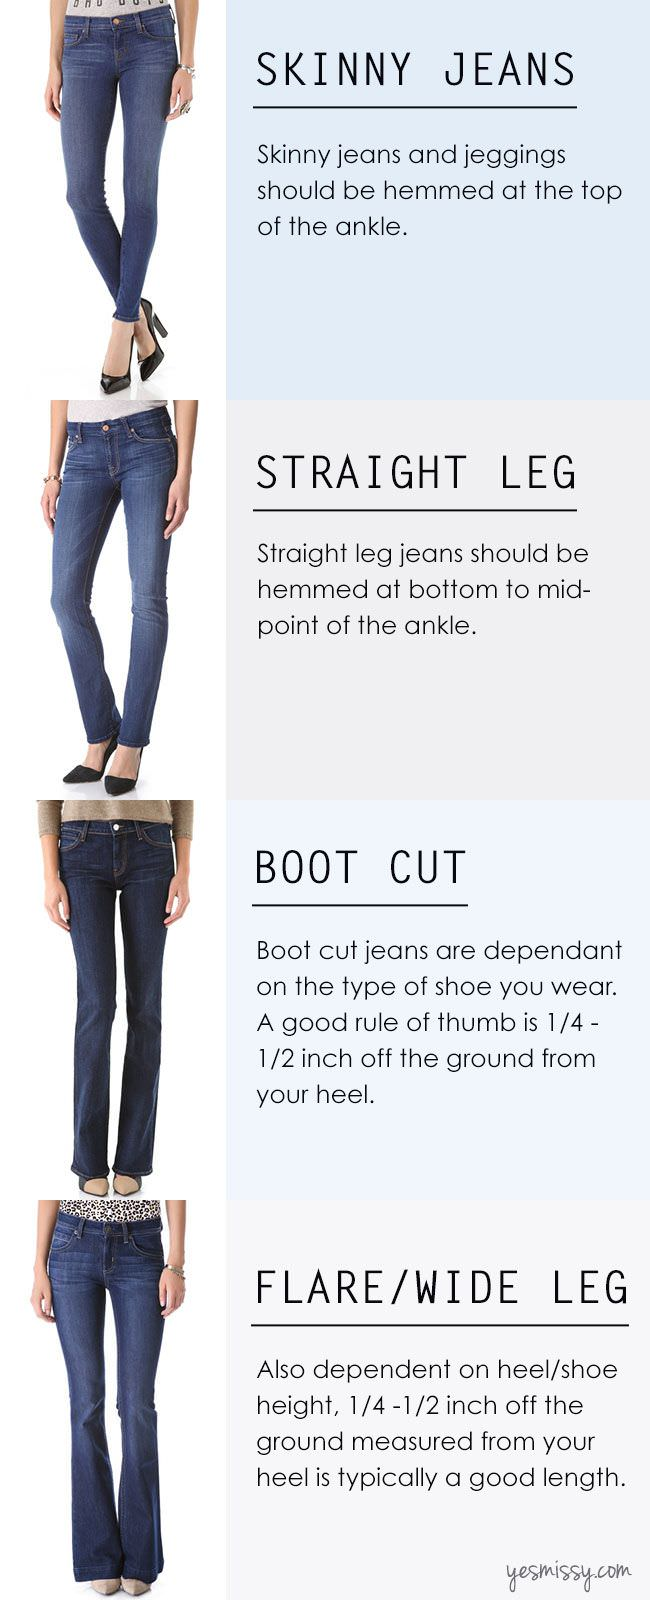 31 Insanely Useful Fashion Infographics For Women Part I